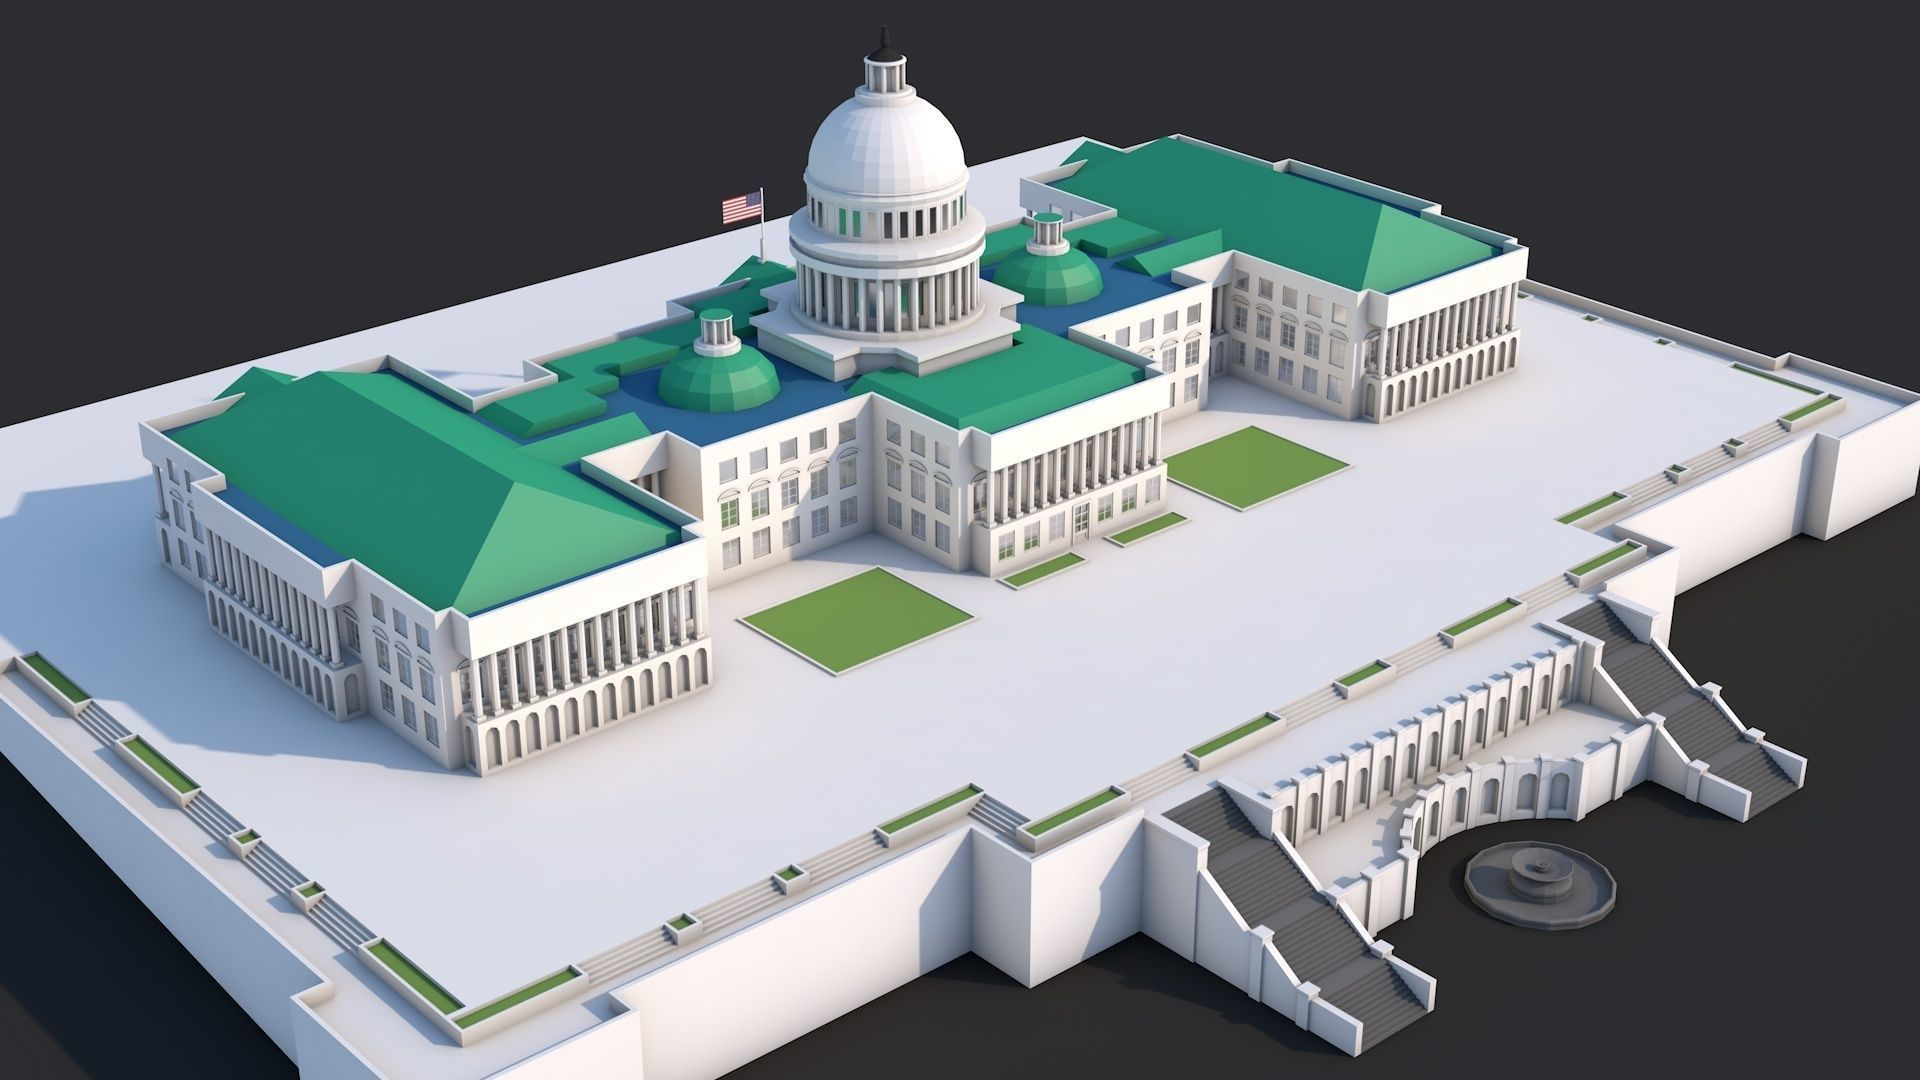 Low Poly United States Capitol Hill Landmark